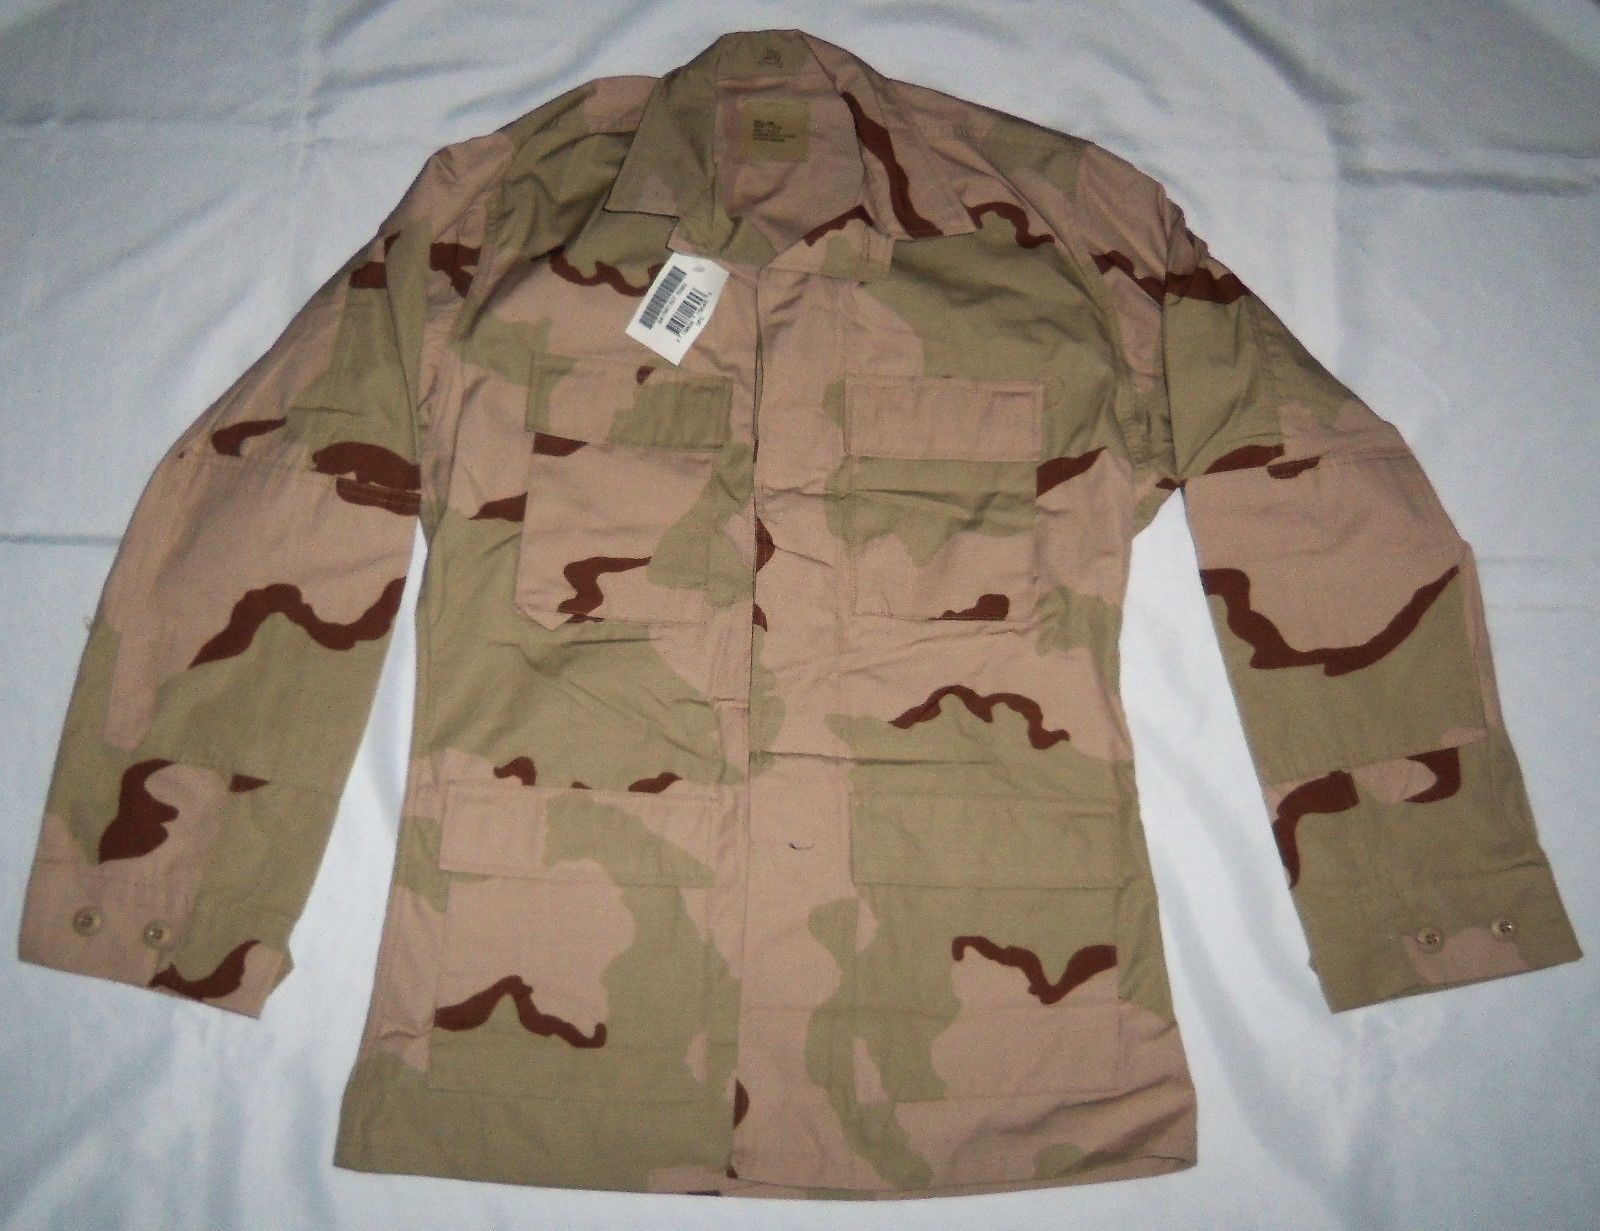 55b20abd0ed96 57. 57. Previous. Army U.S. Military Camo Desert Coat Camouflage Pattern  Combat Jacket SMALL- LONG · Army ...